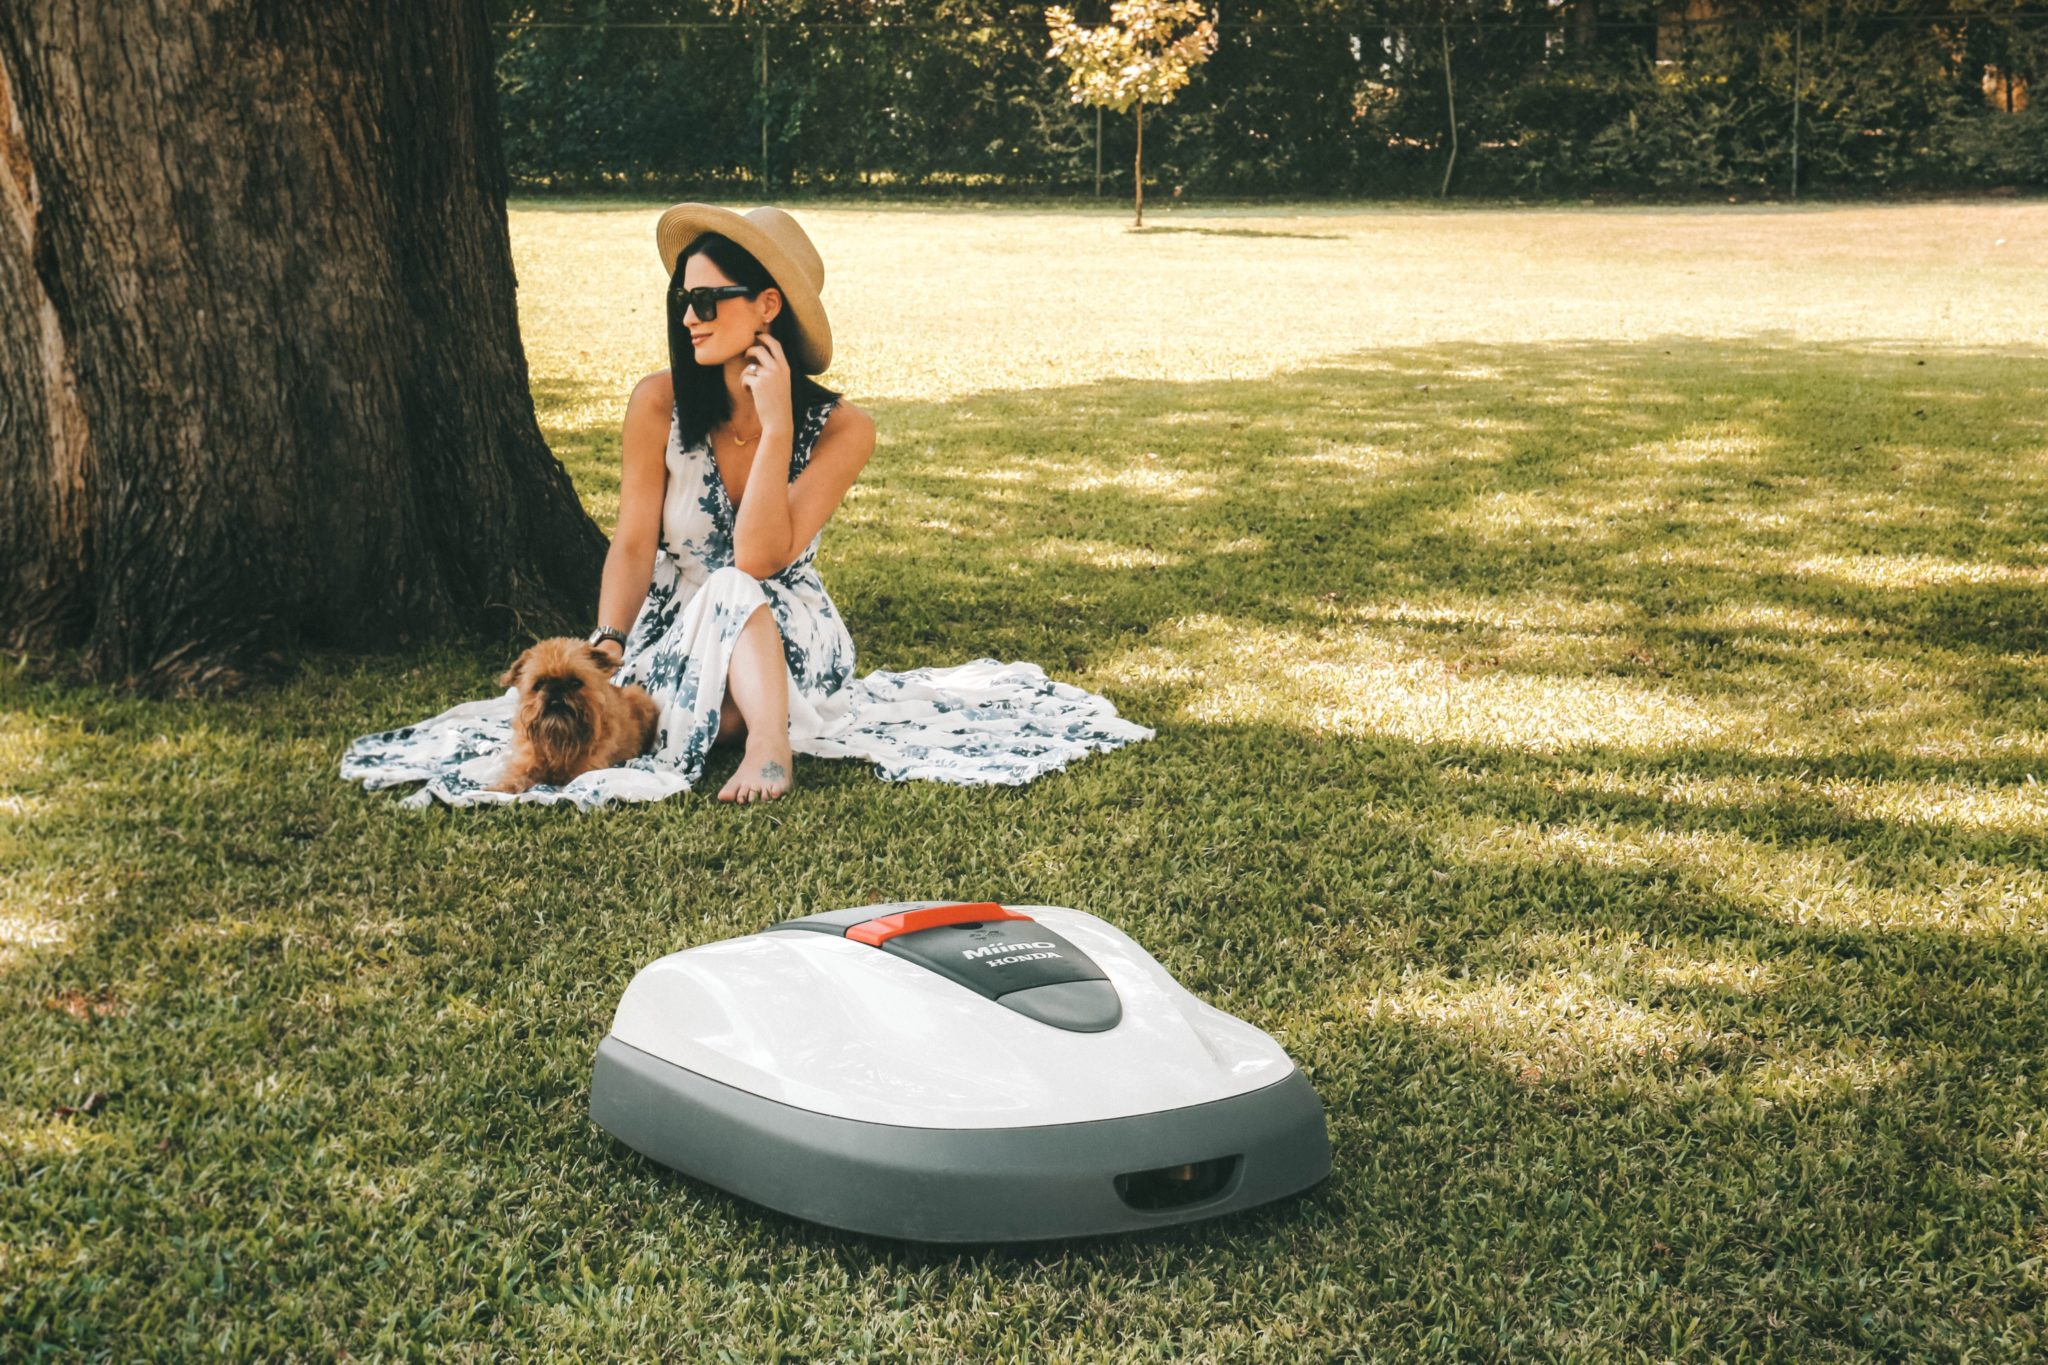 Honda Miimo Robotic Lawn Mower Review by popular Austin lifestyle blog, Dressed to Kill: image of woman and her dog sitting near the Honda Miimo Robotic Lawn Mower.